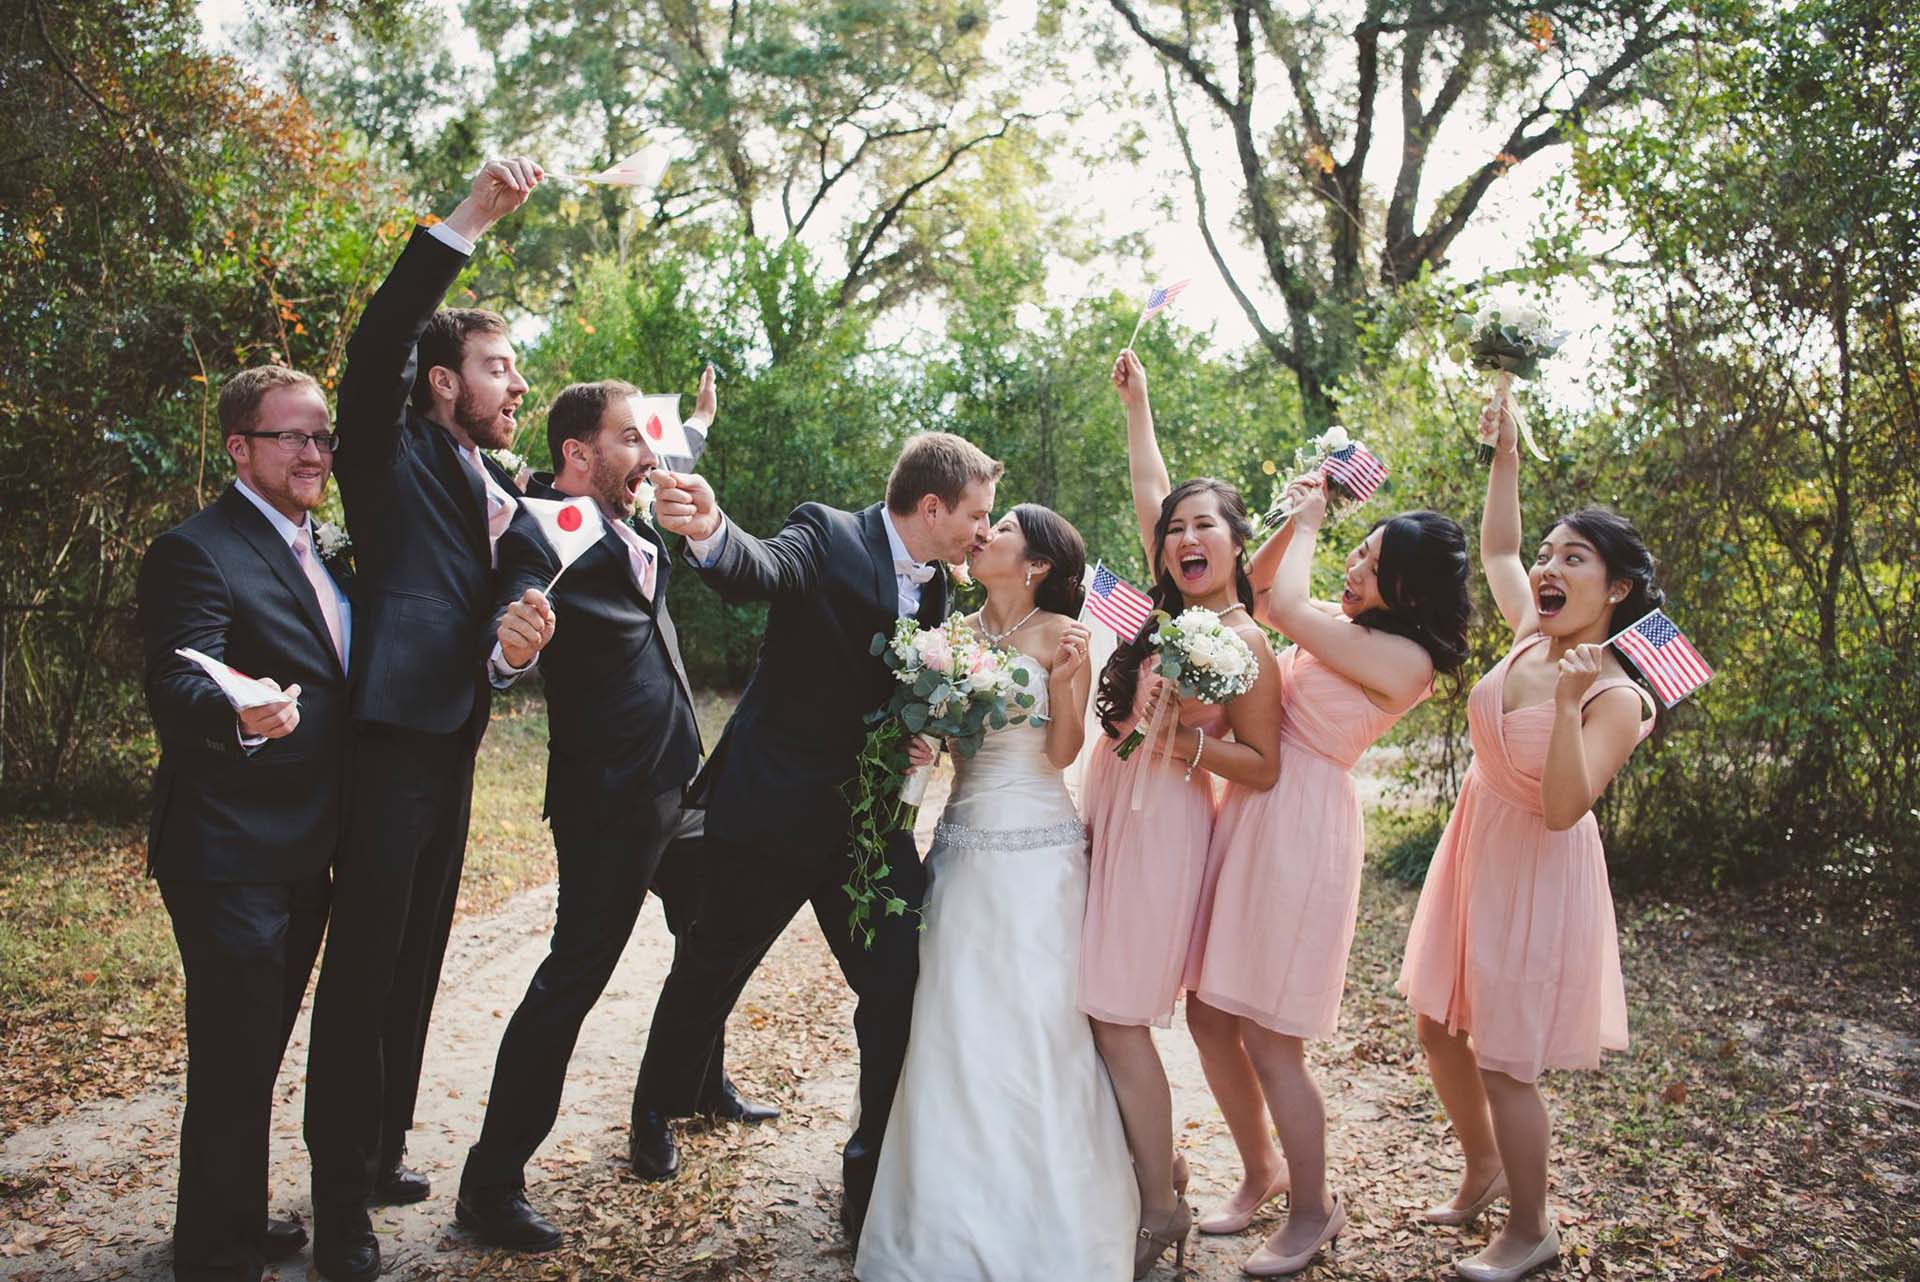 Bridal party celebrating